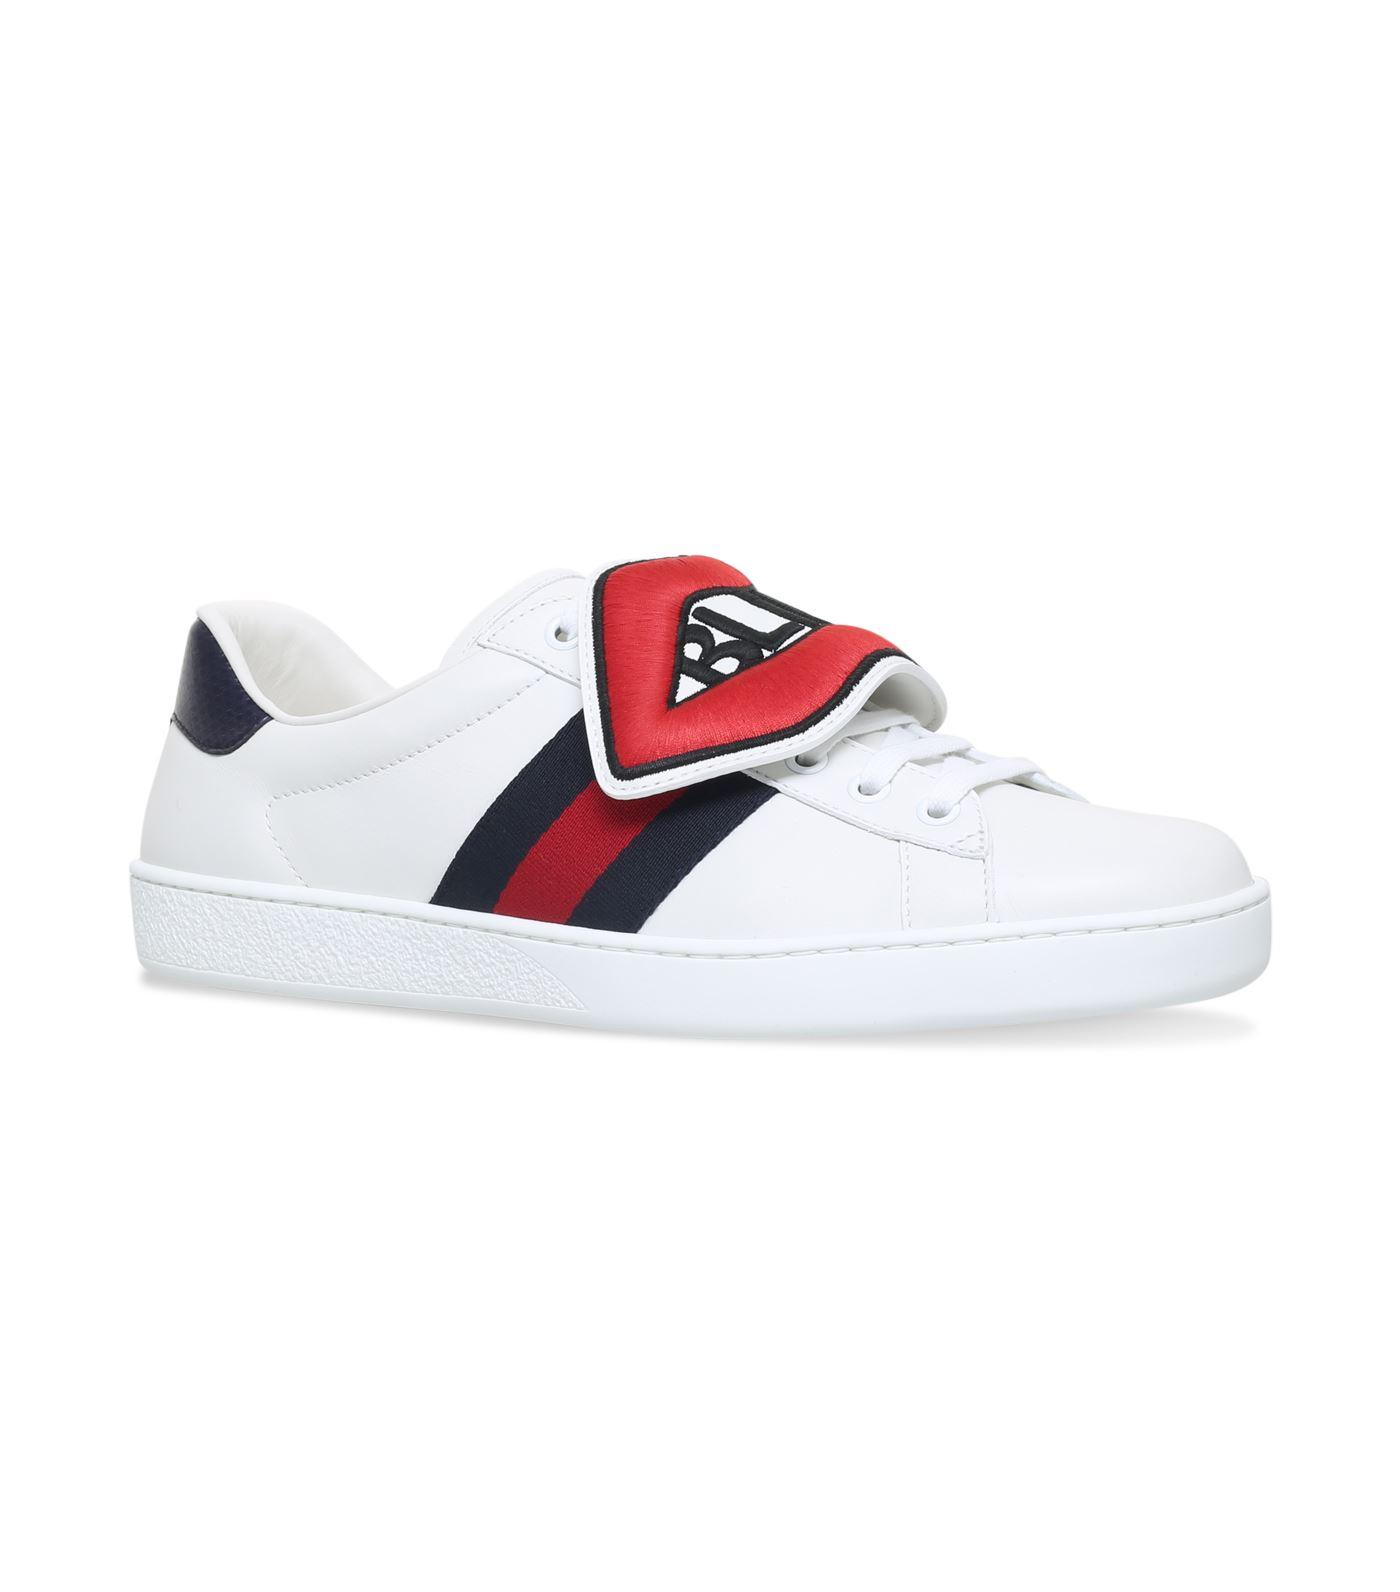 Gucci Leather Lips Ace Sneakers in